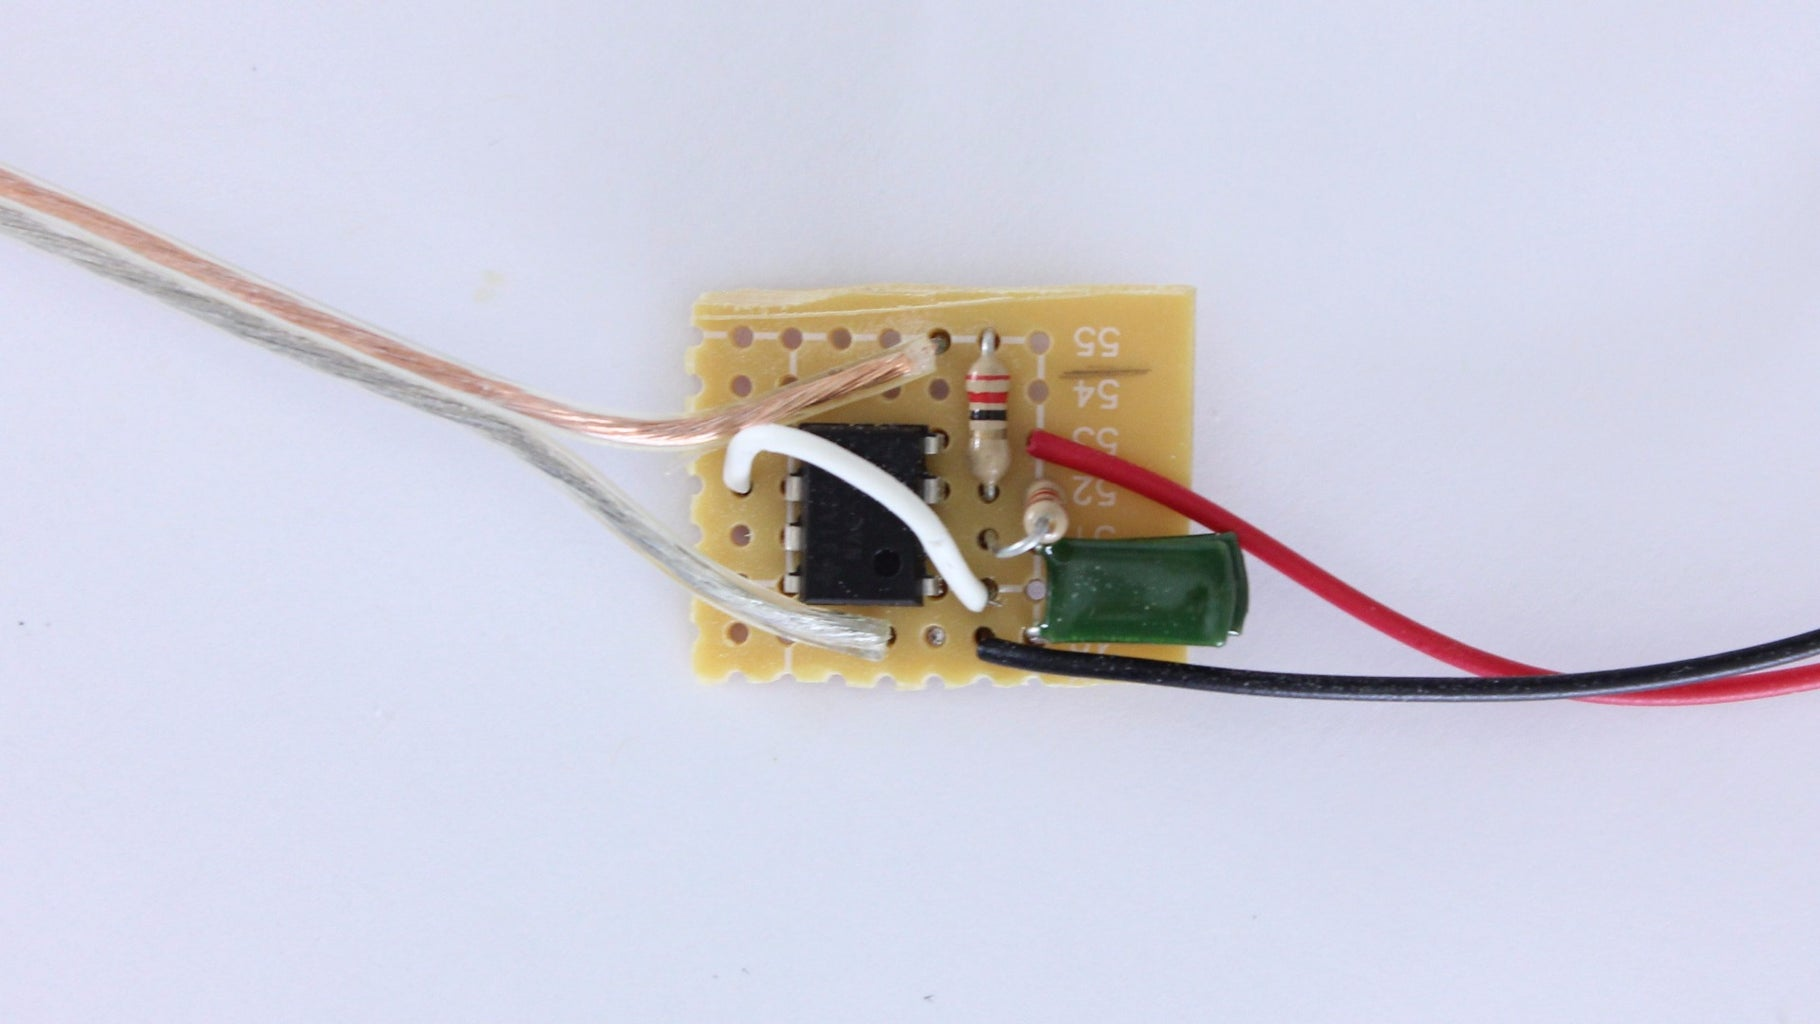 Construct the IR Remote Circuit